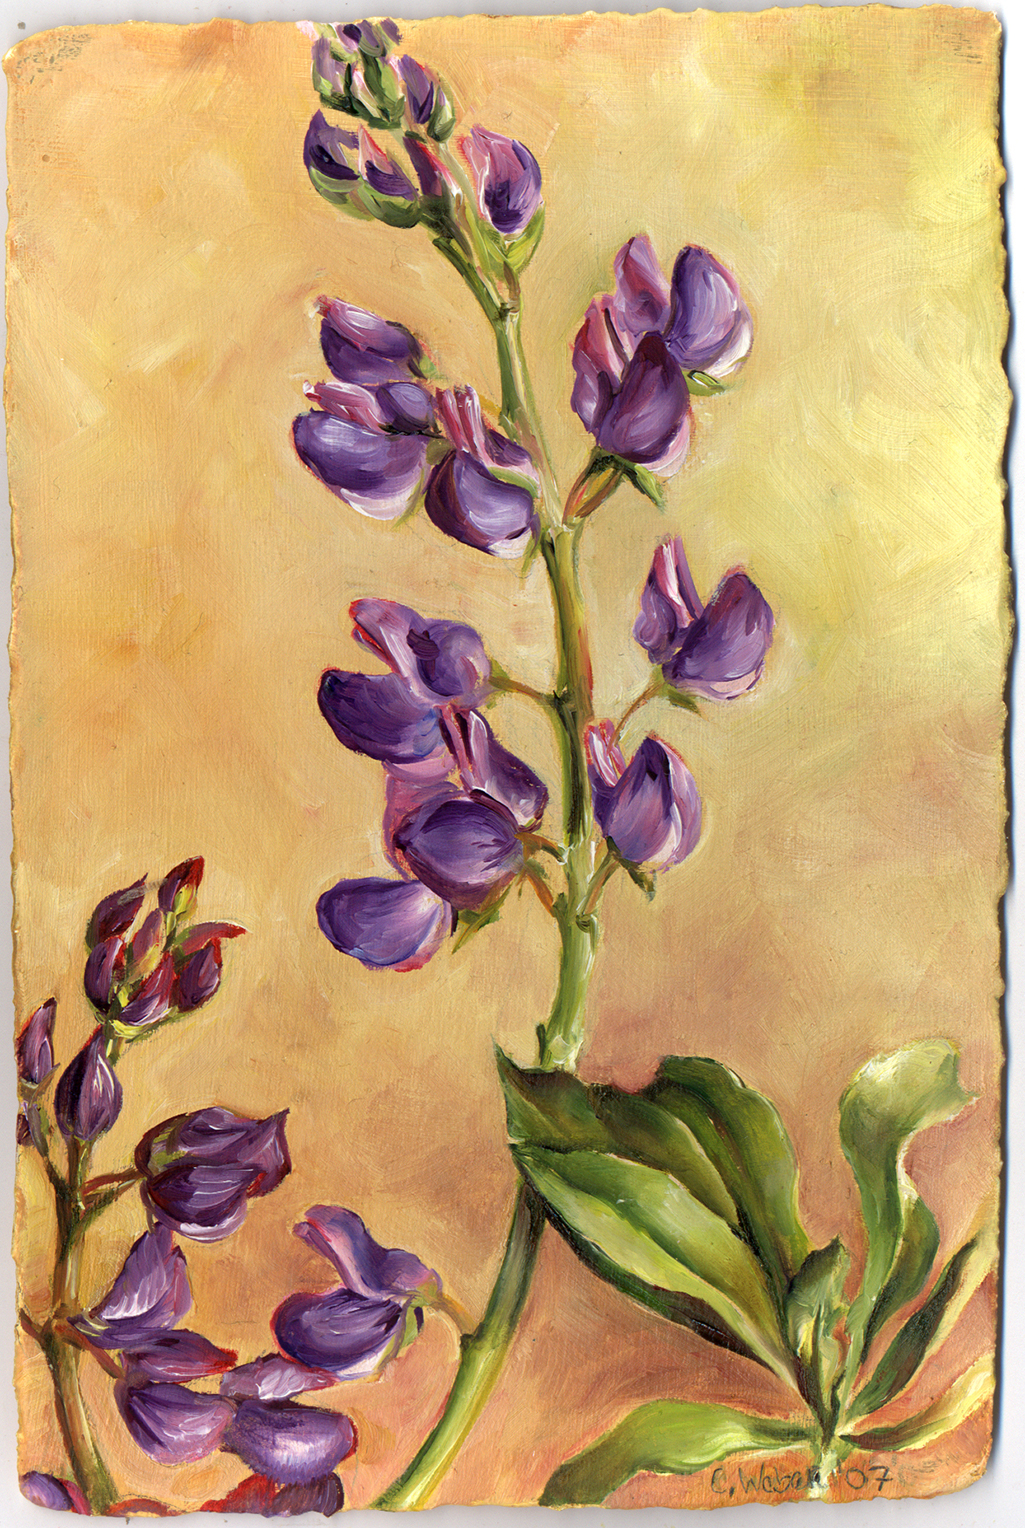 cathy weber - art - painting - woman -flower - watercolor- montana - painting - parchment - skin - botanical - study - wildflower - oil painting